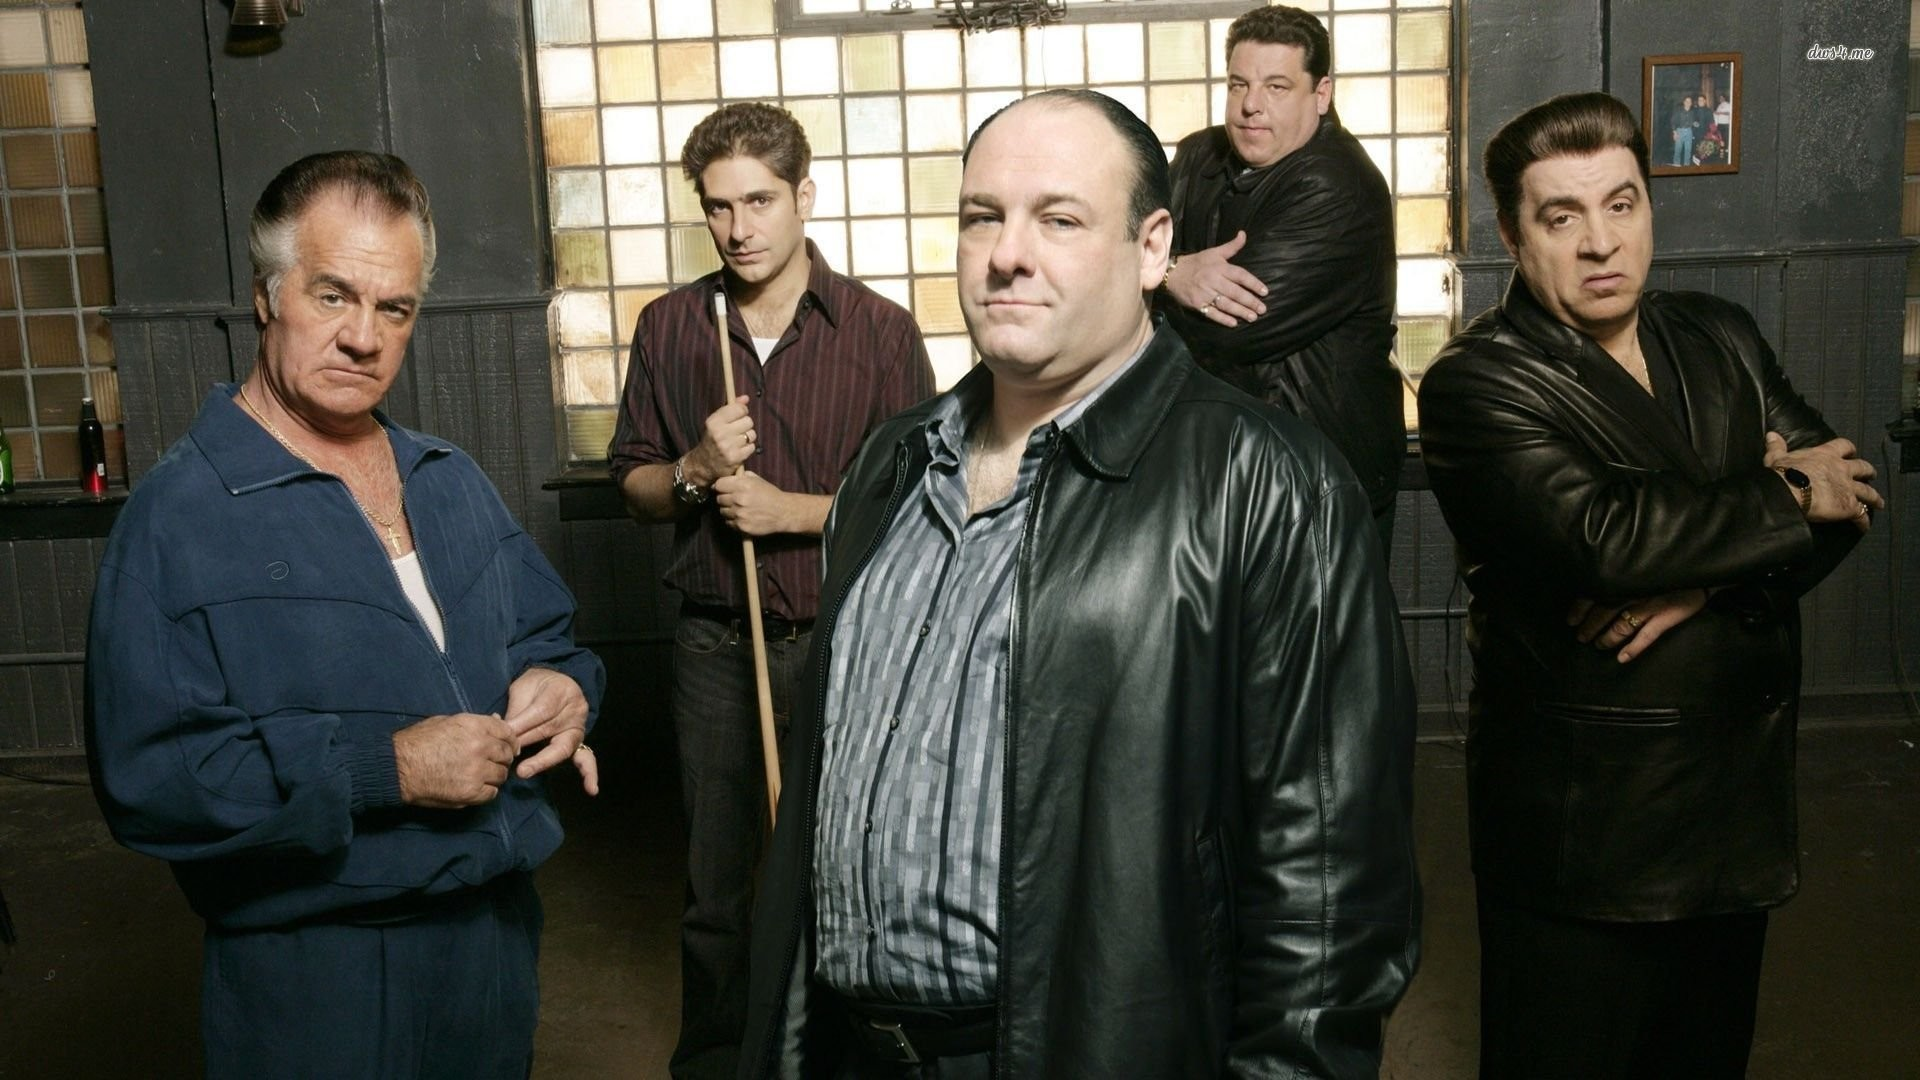 Res: 1920x1080, The Sopranos Wallpapers 10 - 1920 X 1080